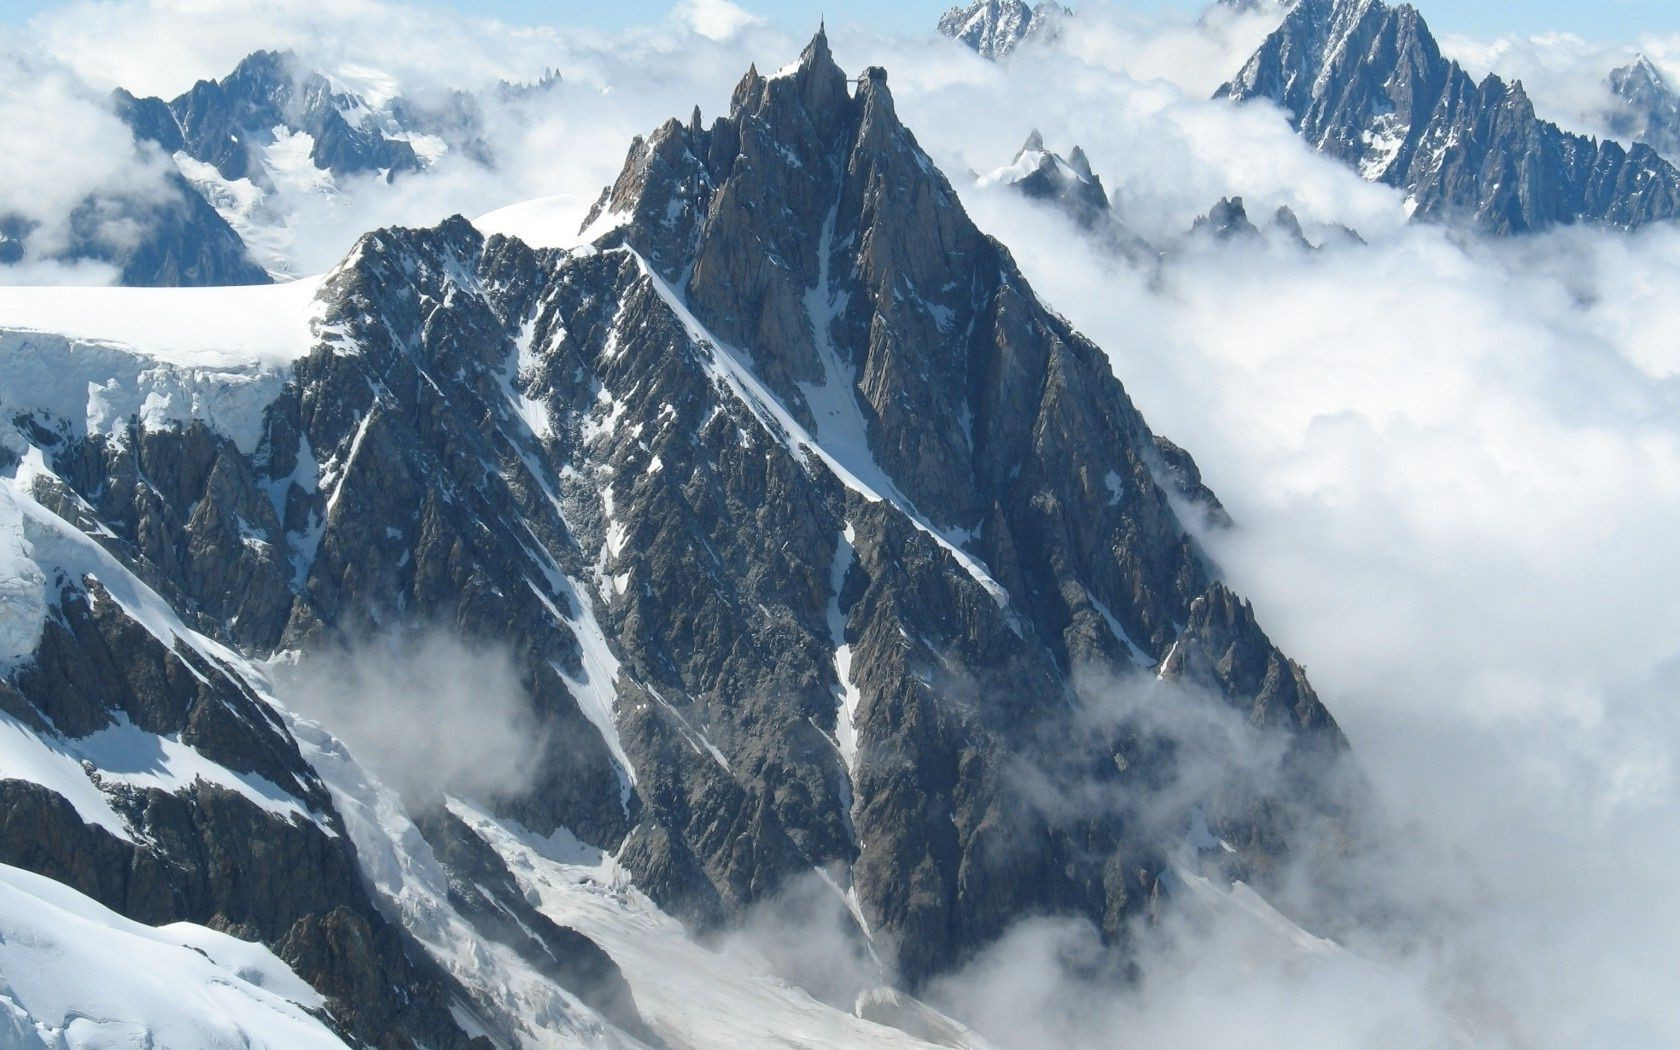 Mont blanc mountains, french alps mountain aiguille du midi. Android wallpapers for free.